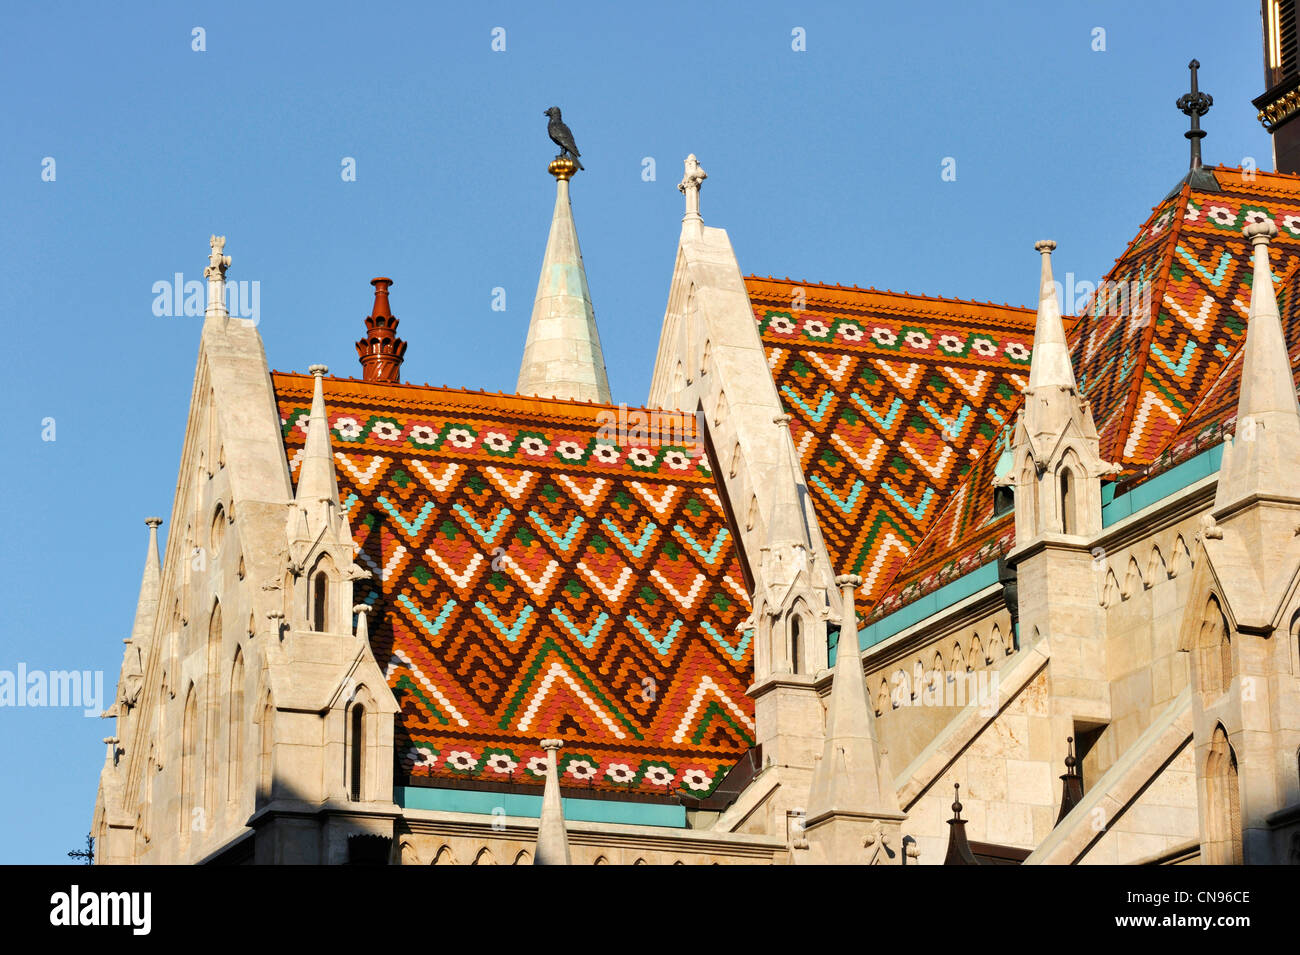 Hungary, Budapest, Buda district, Saint Mathias church, Castle Hill listed as World Heritage by UNESCO - Stock Image